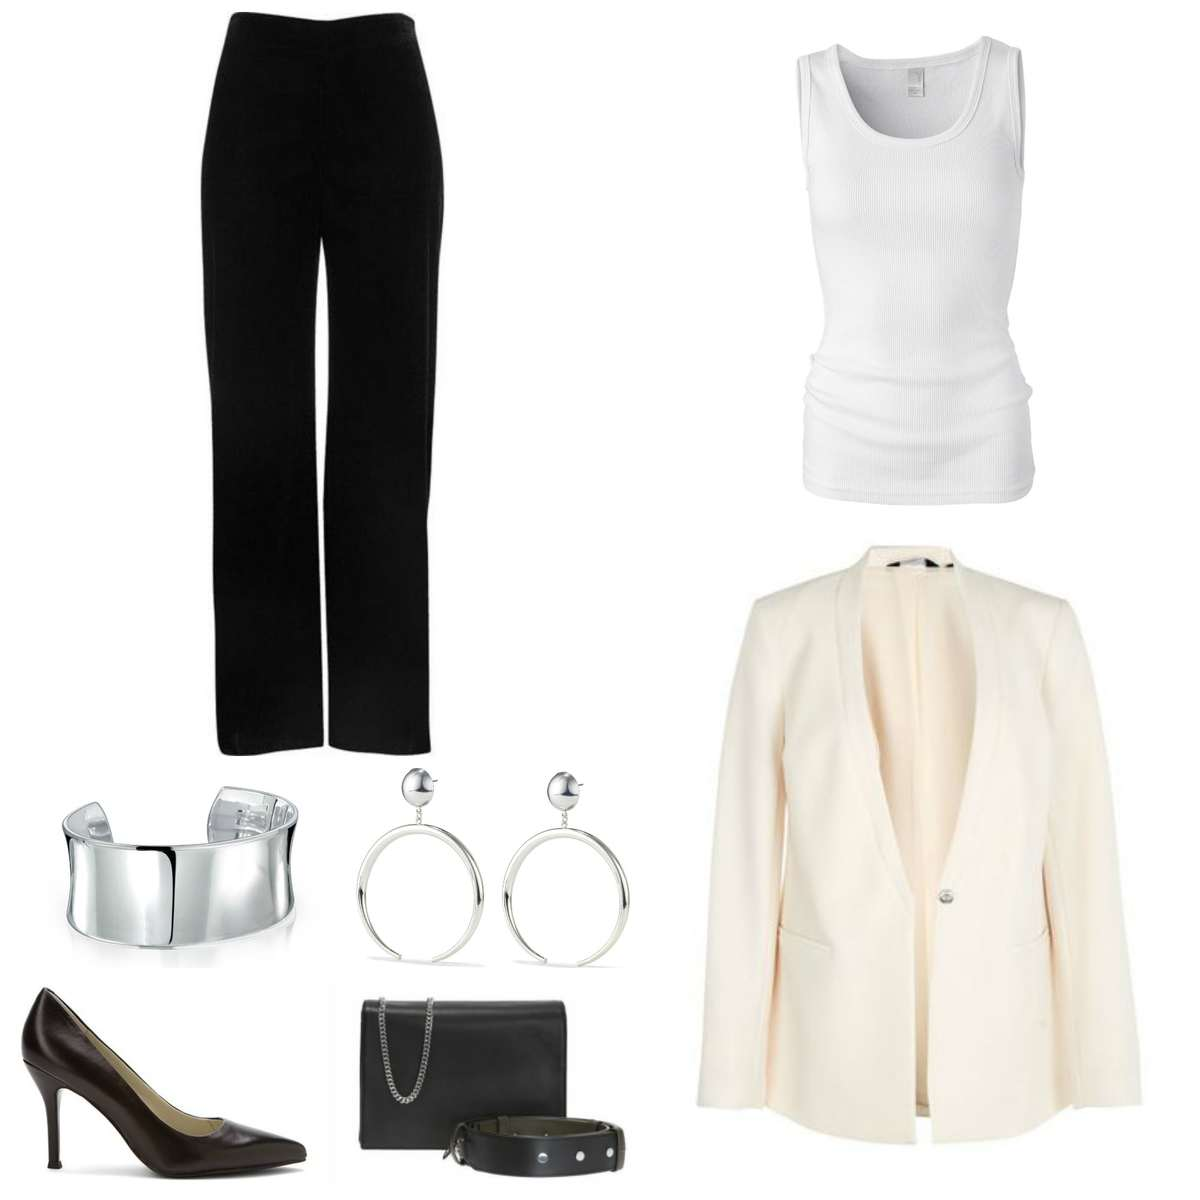 Image is of a cream blazer, white tank, black pants, silver cuff bracelet and statement earrings, black pumps, and a black handbag.